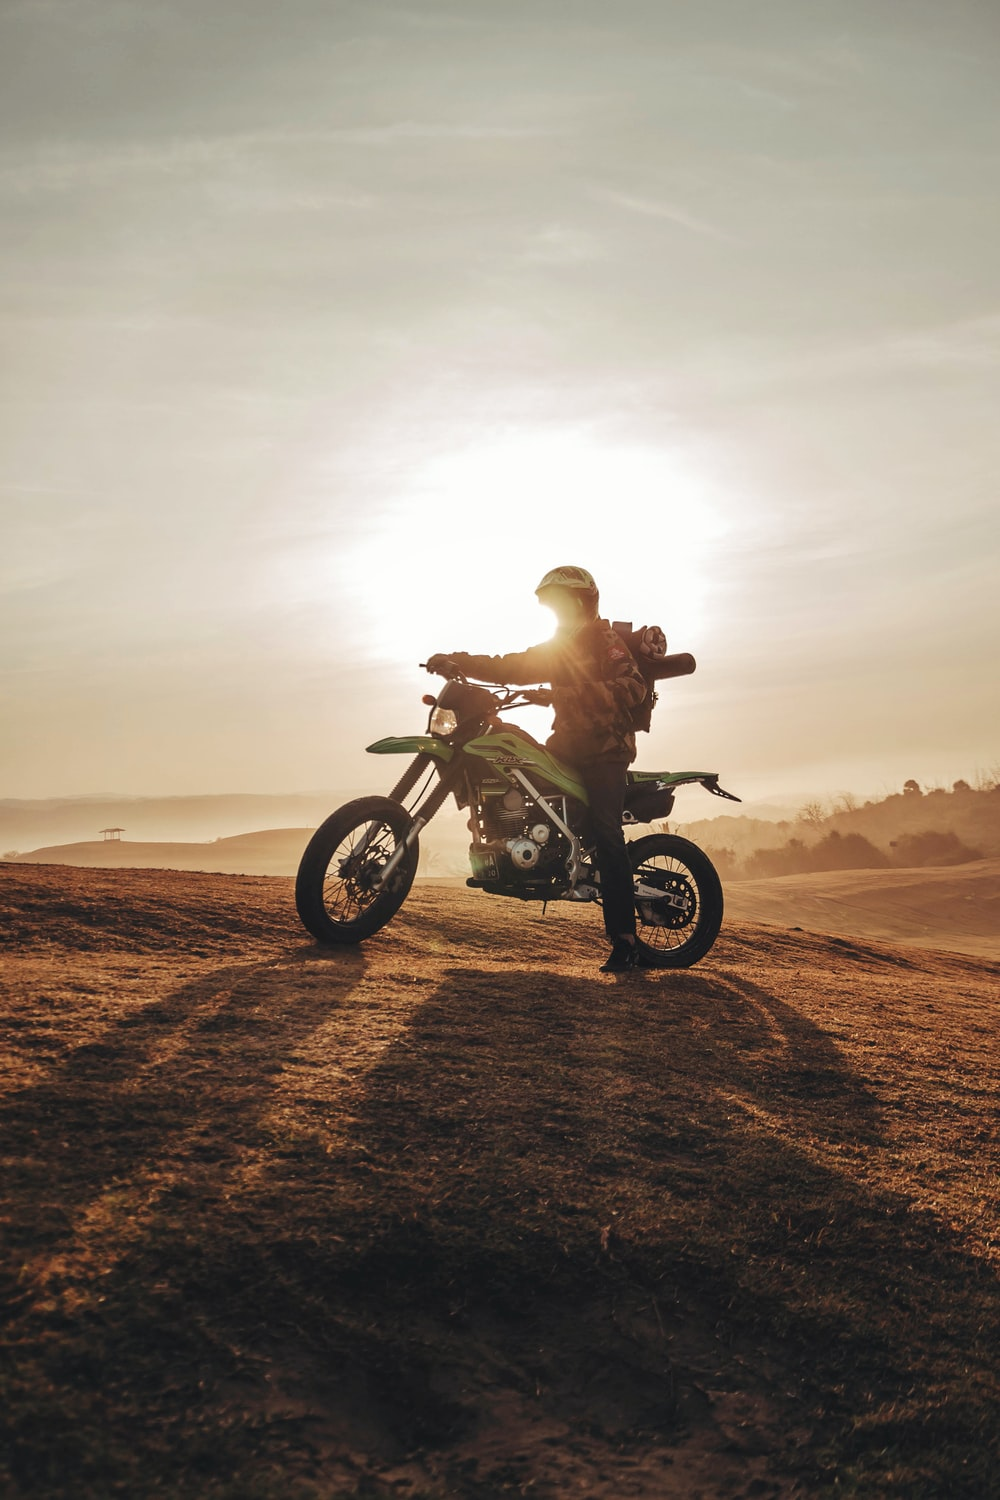 Motorcycle Repair: Four Common Problems